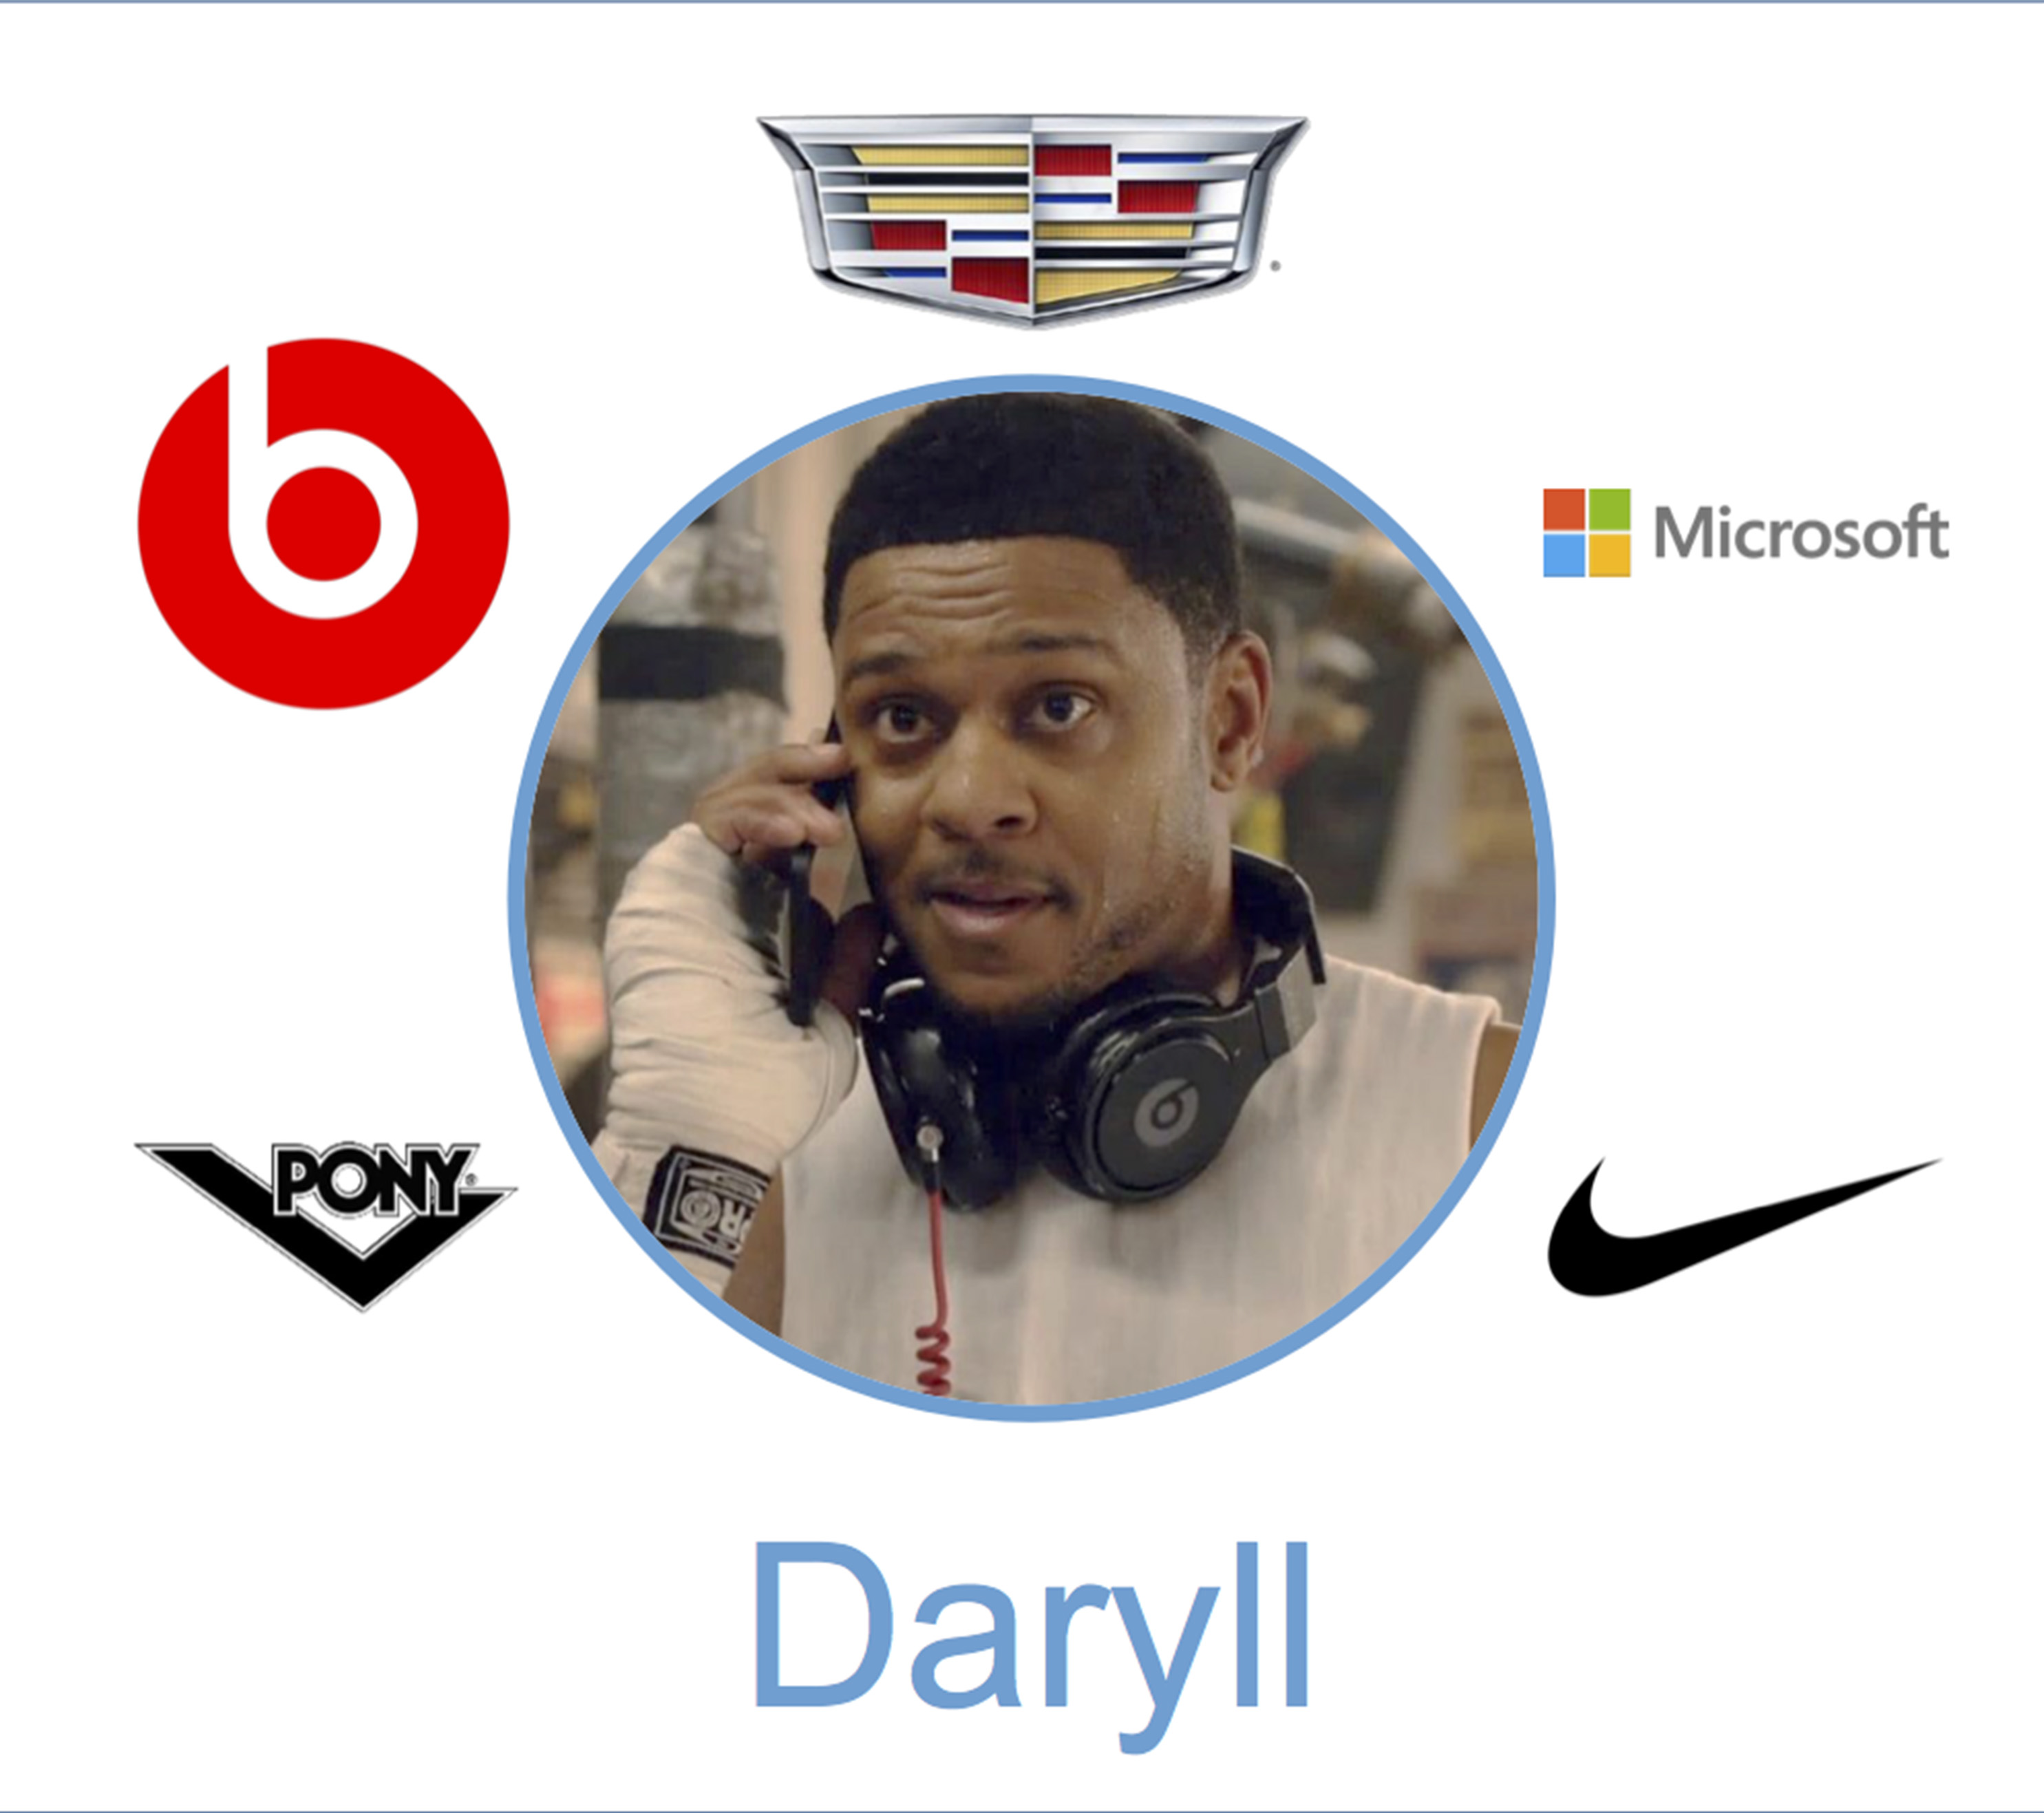 daryll brands product placment ray donovan season 4 pony nike cadillac beats by dre